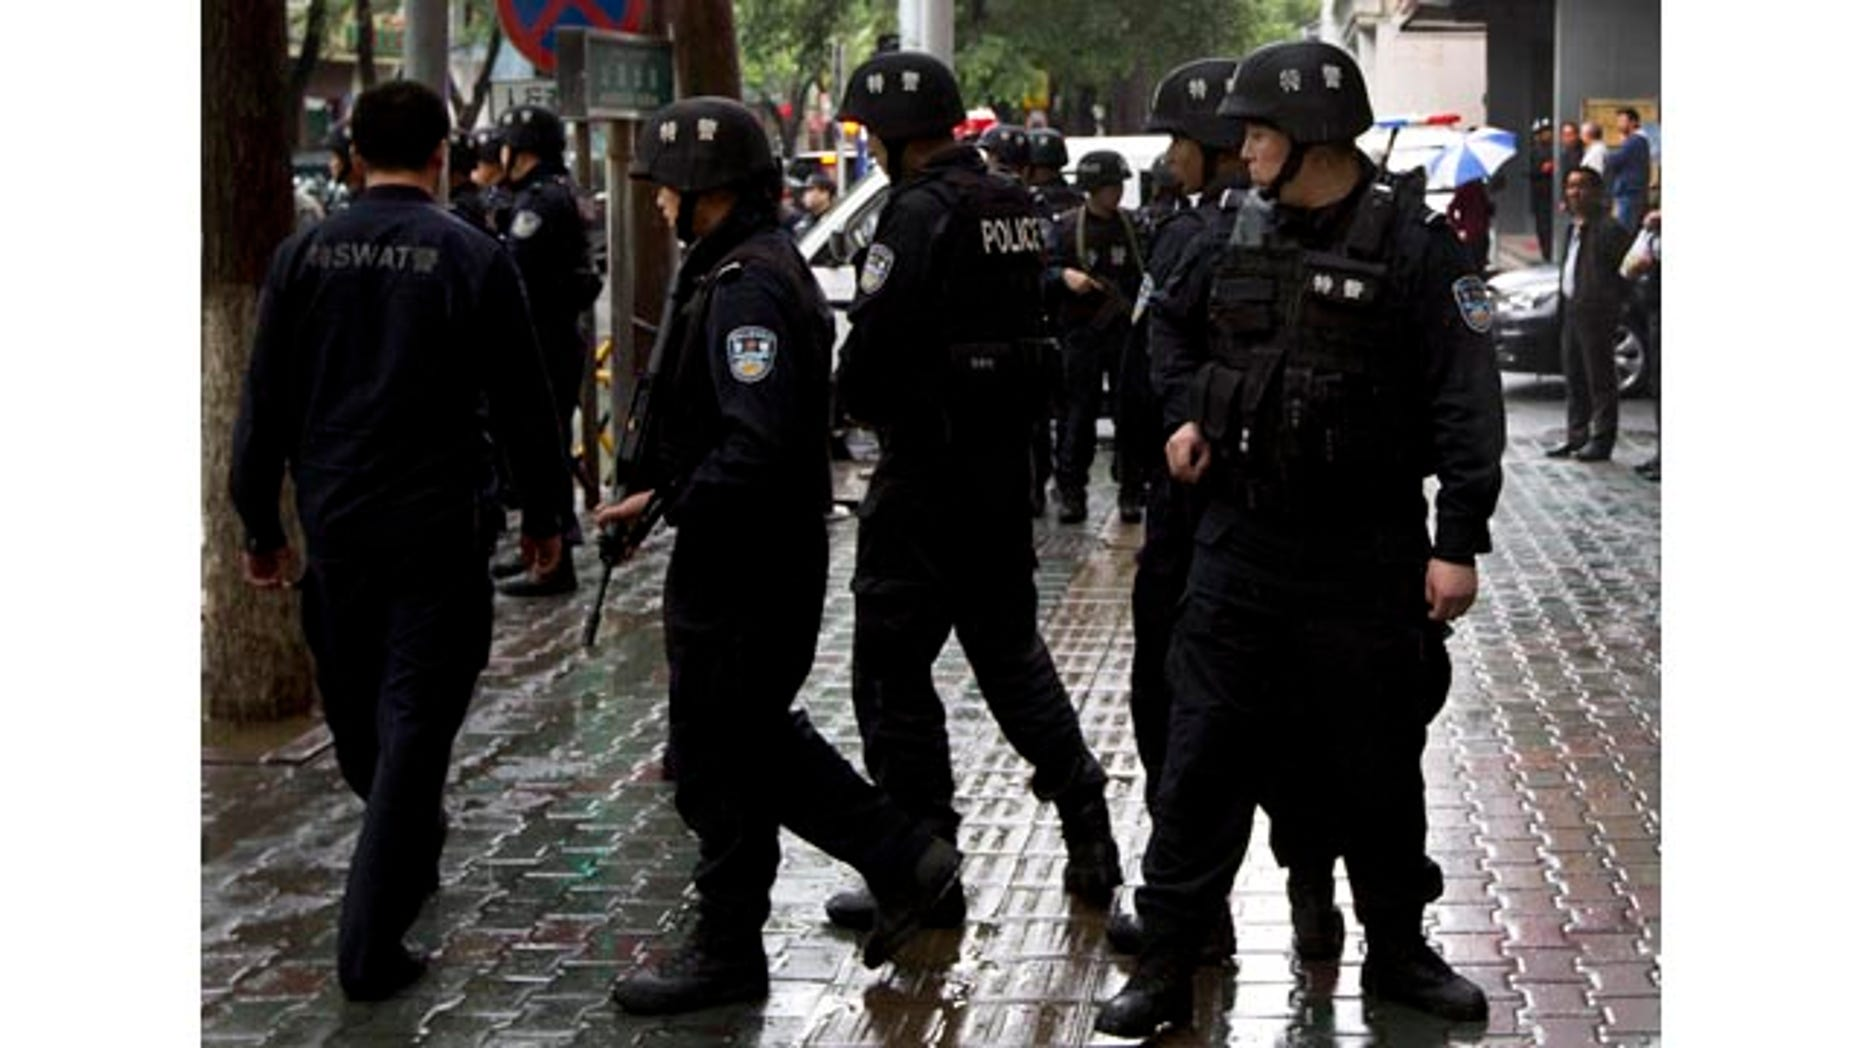 May 22, 2014: Armed policemen prepare to patrol near the site of an explosion in Urumqi, northwest China's Xinjiang Uygur Autonomous Region.  (AP Photo/Andy Wong)